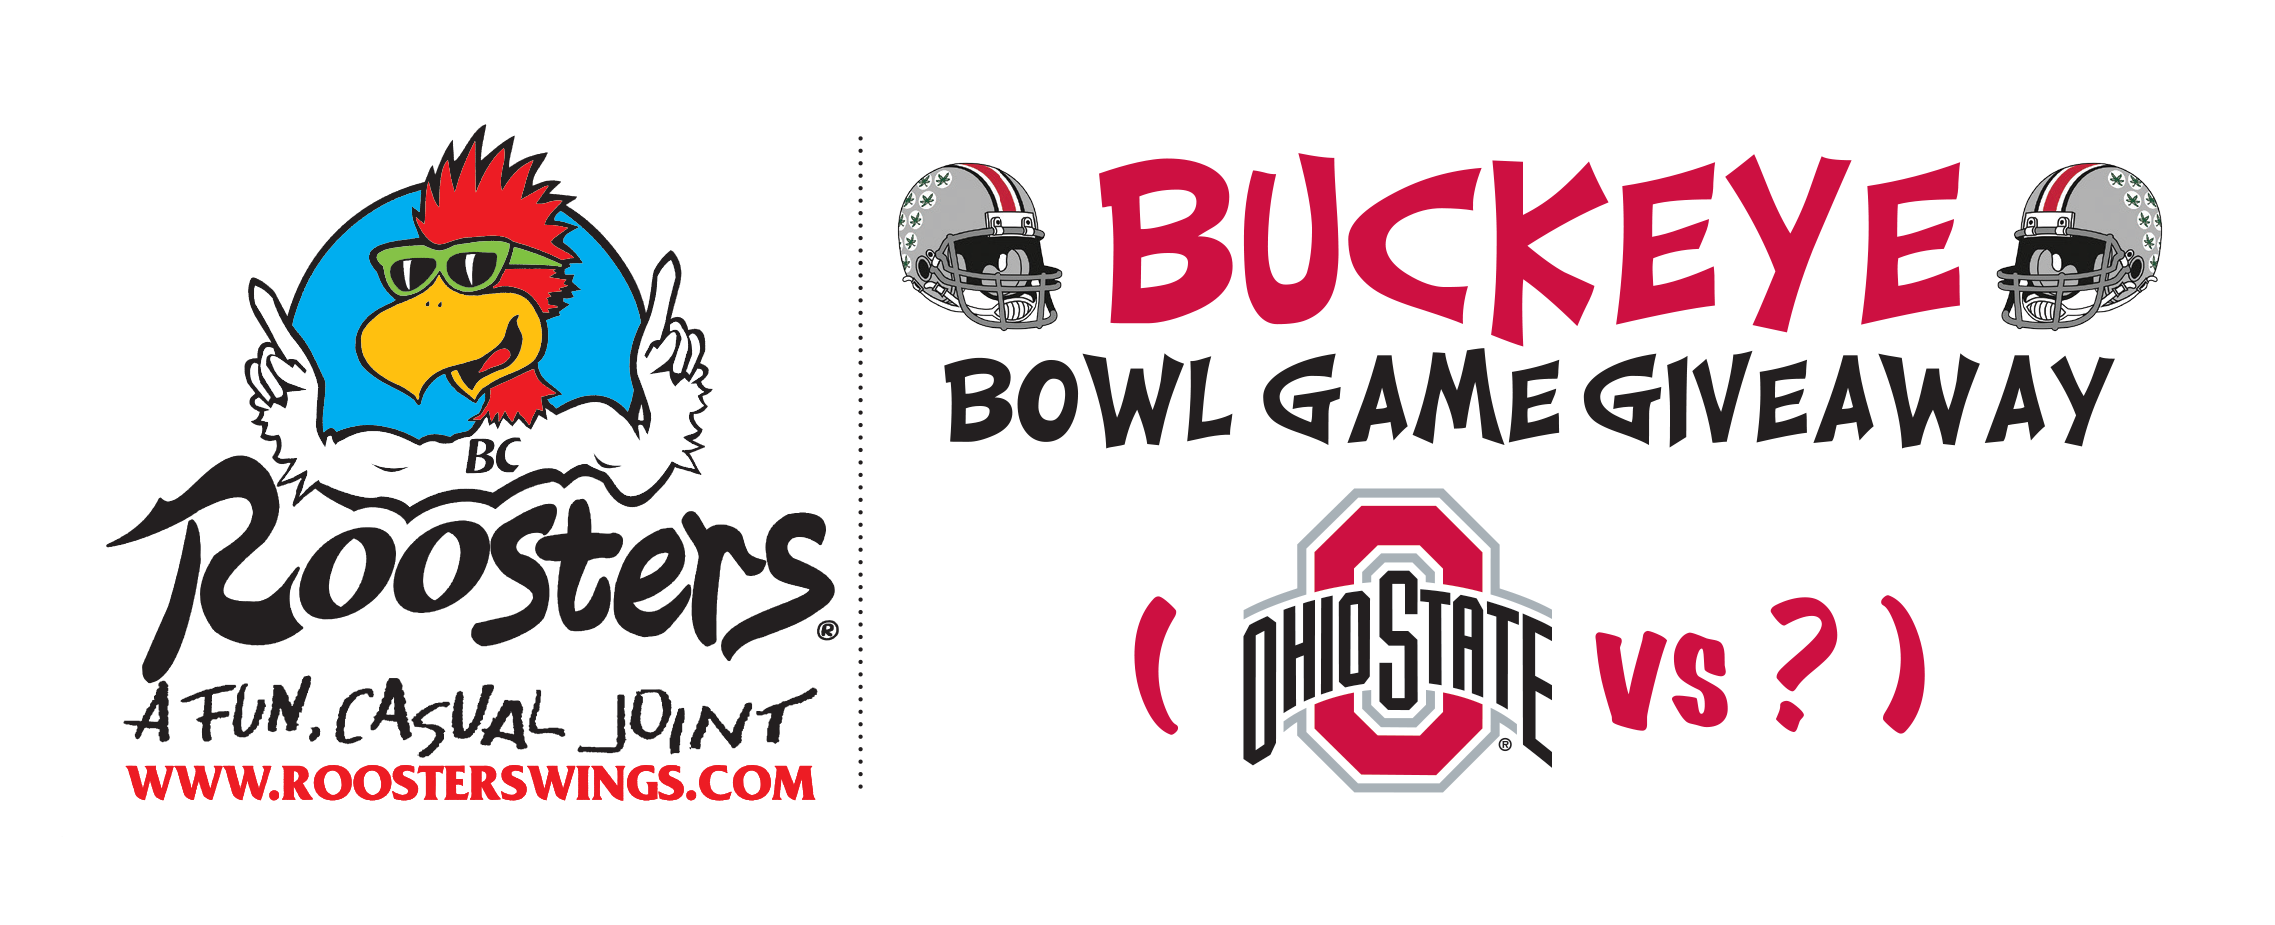 Ohio State Schedule 2020.Football Schedule Ohio State Buckeyes